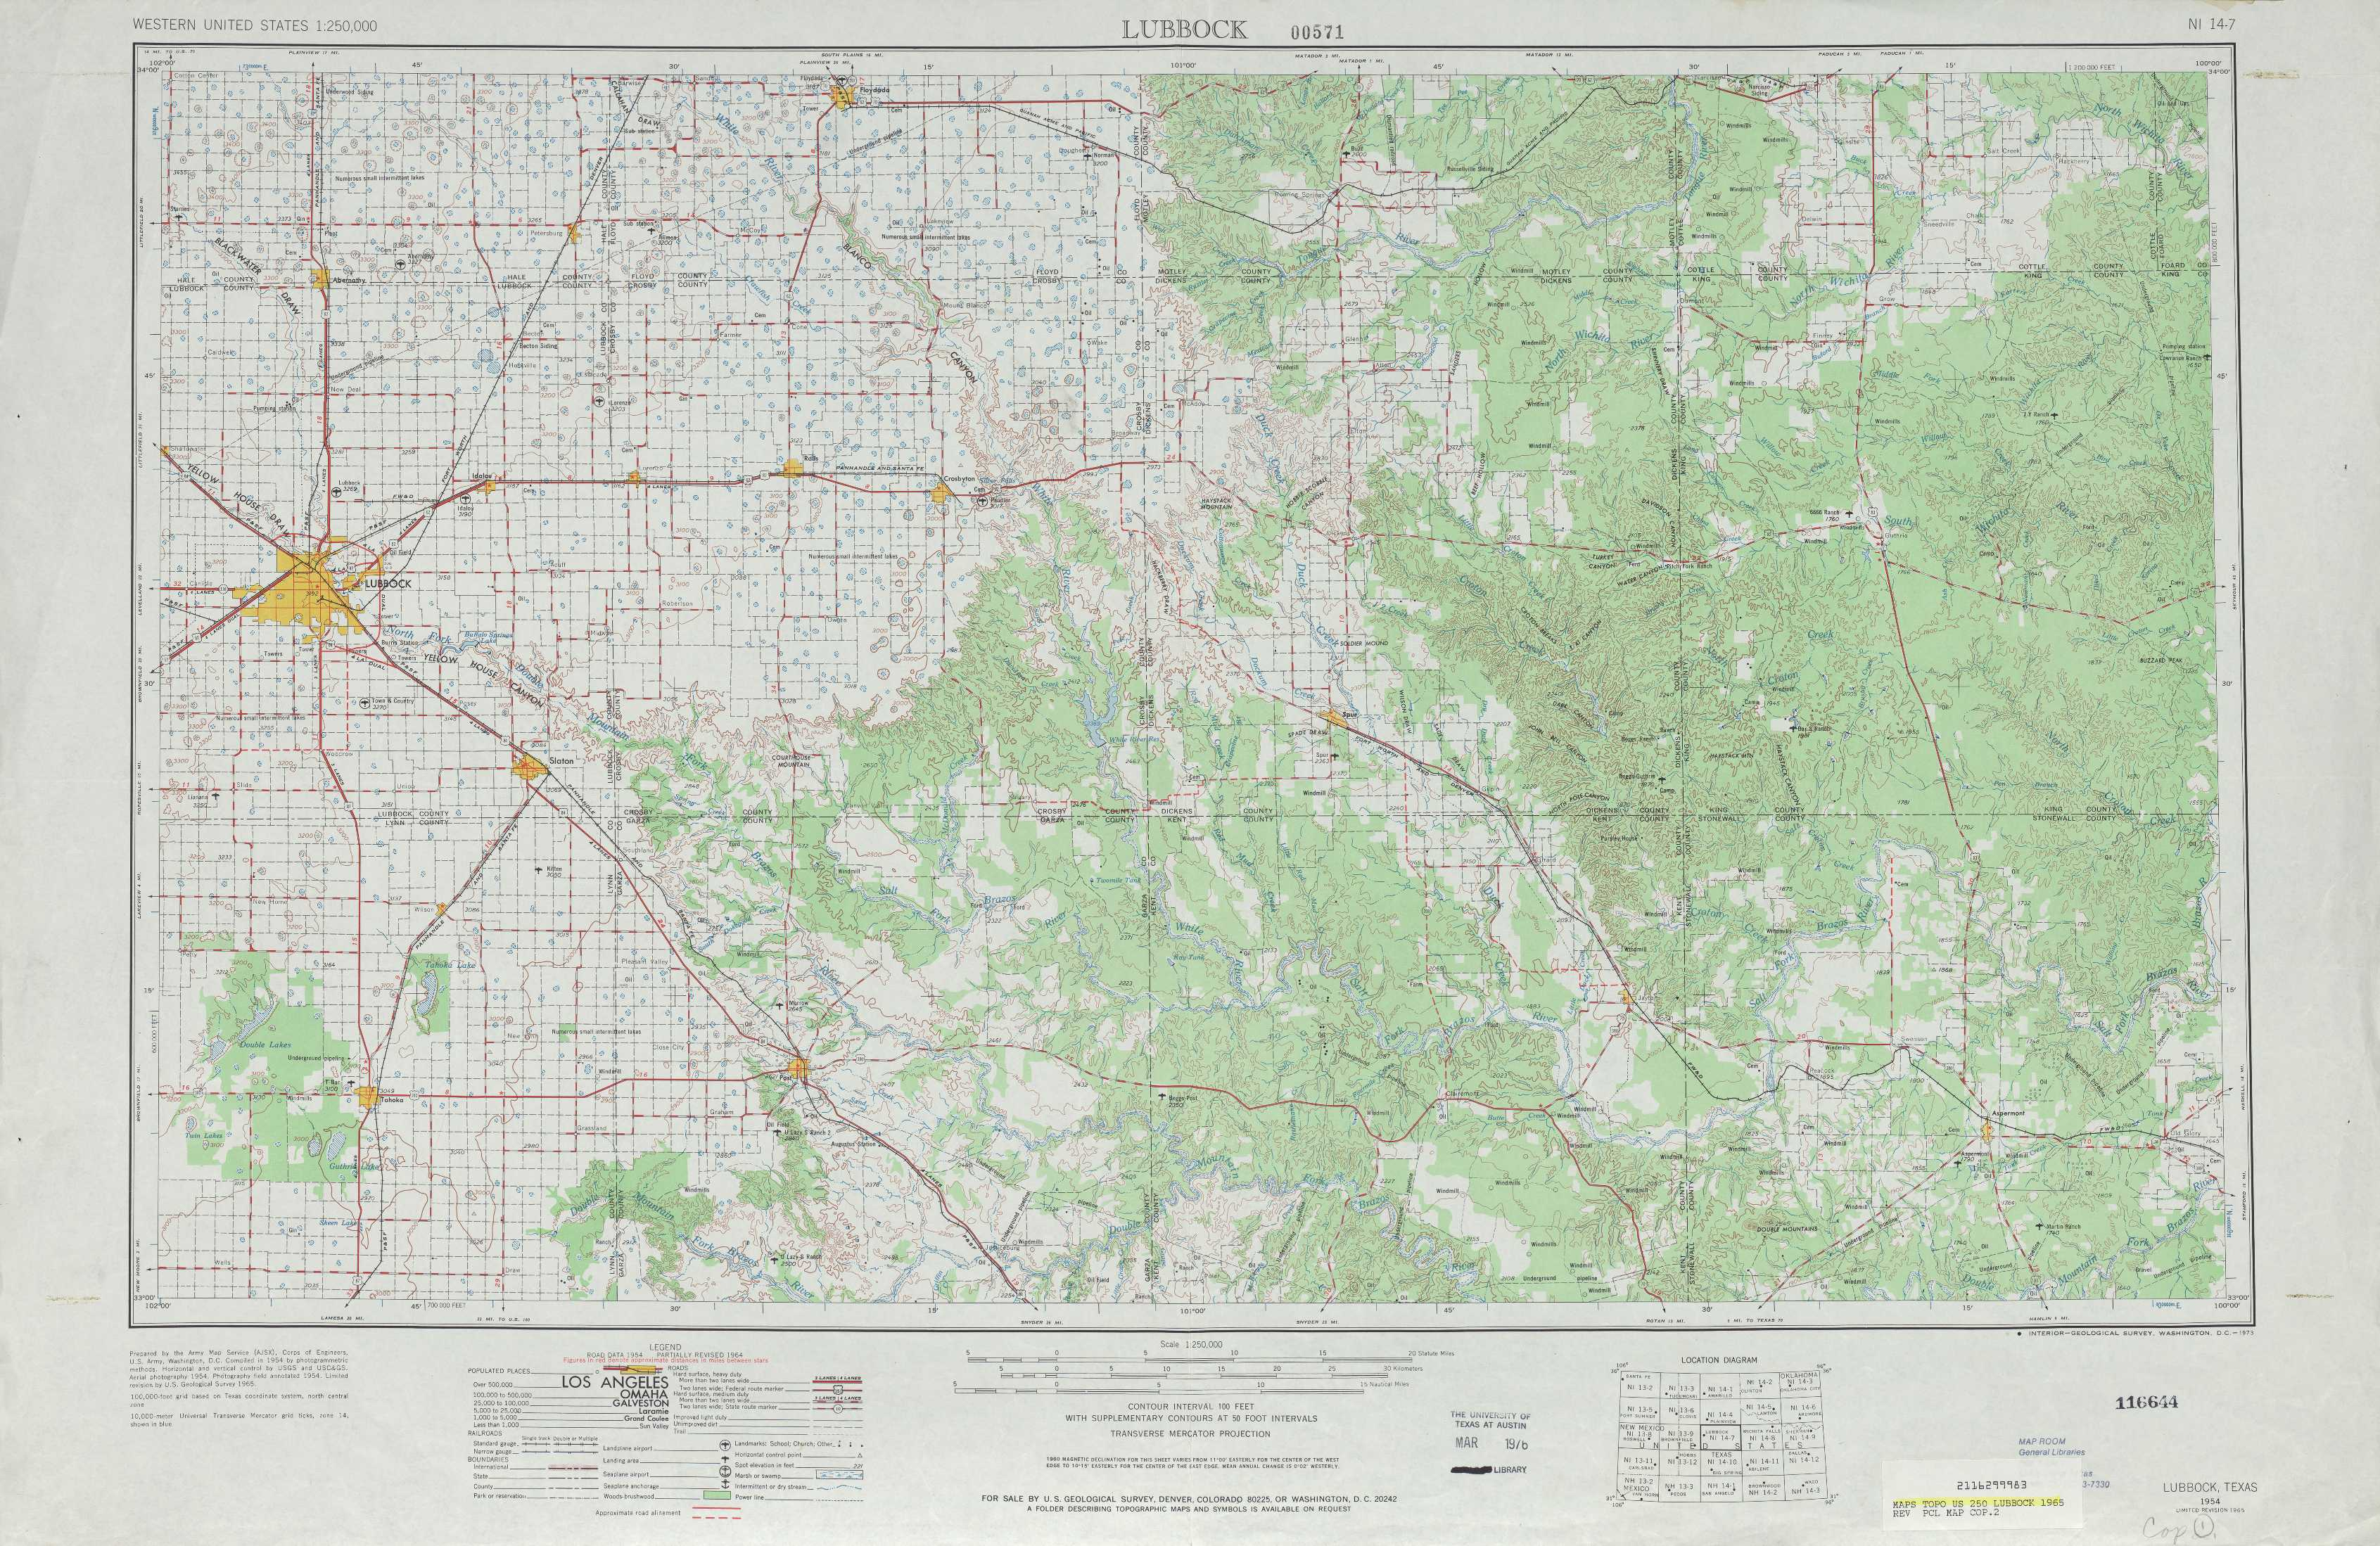 Lubbock topographic maps, TX - USGS Topo Quad 33100a1 at 1:250,000 scale